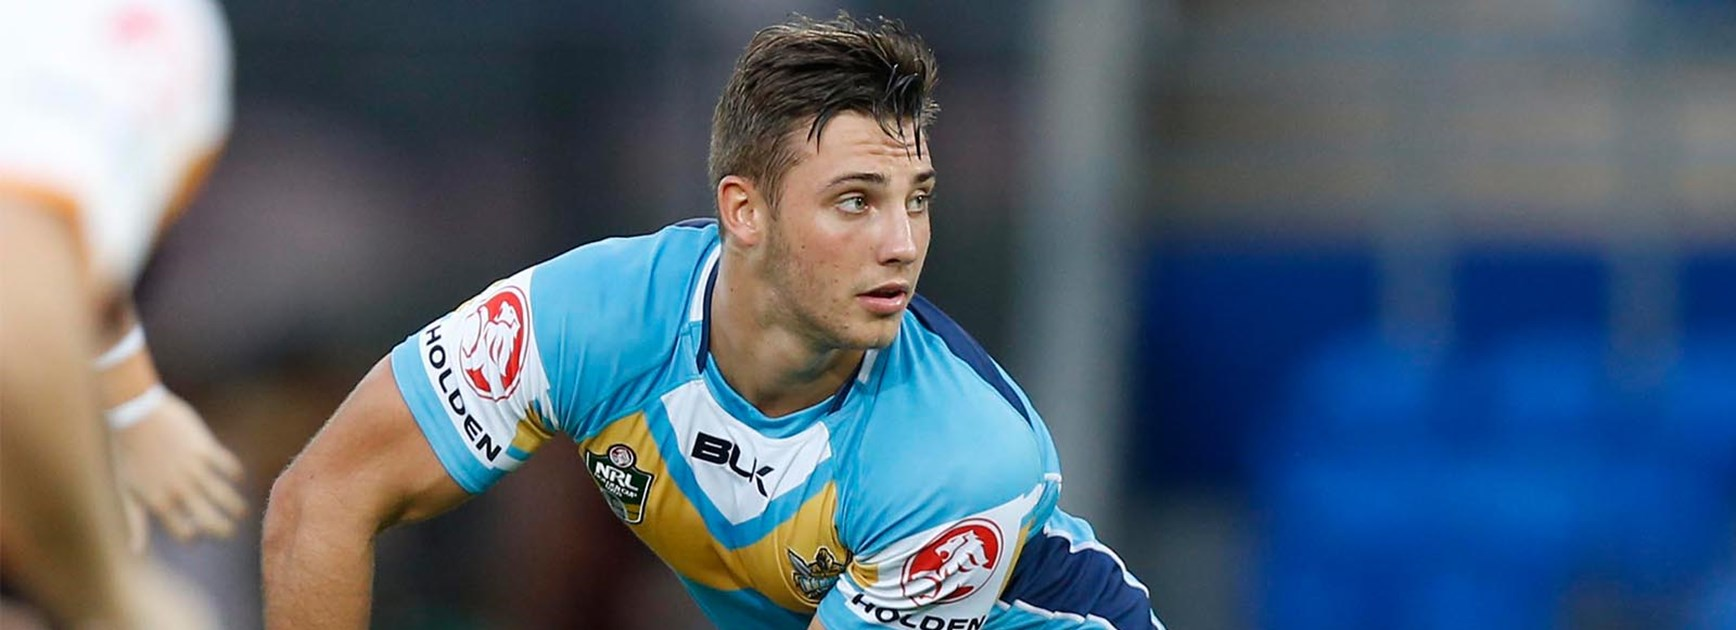 Karl Lawton will make history when he makes his NRL debut for the Titans.